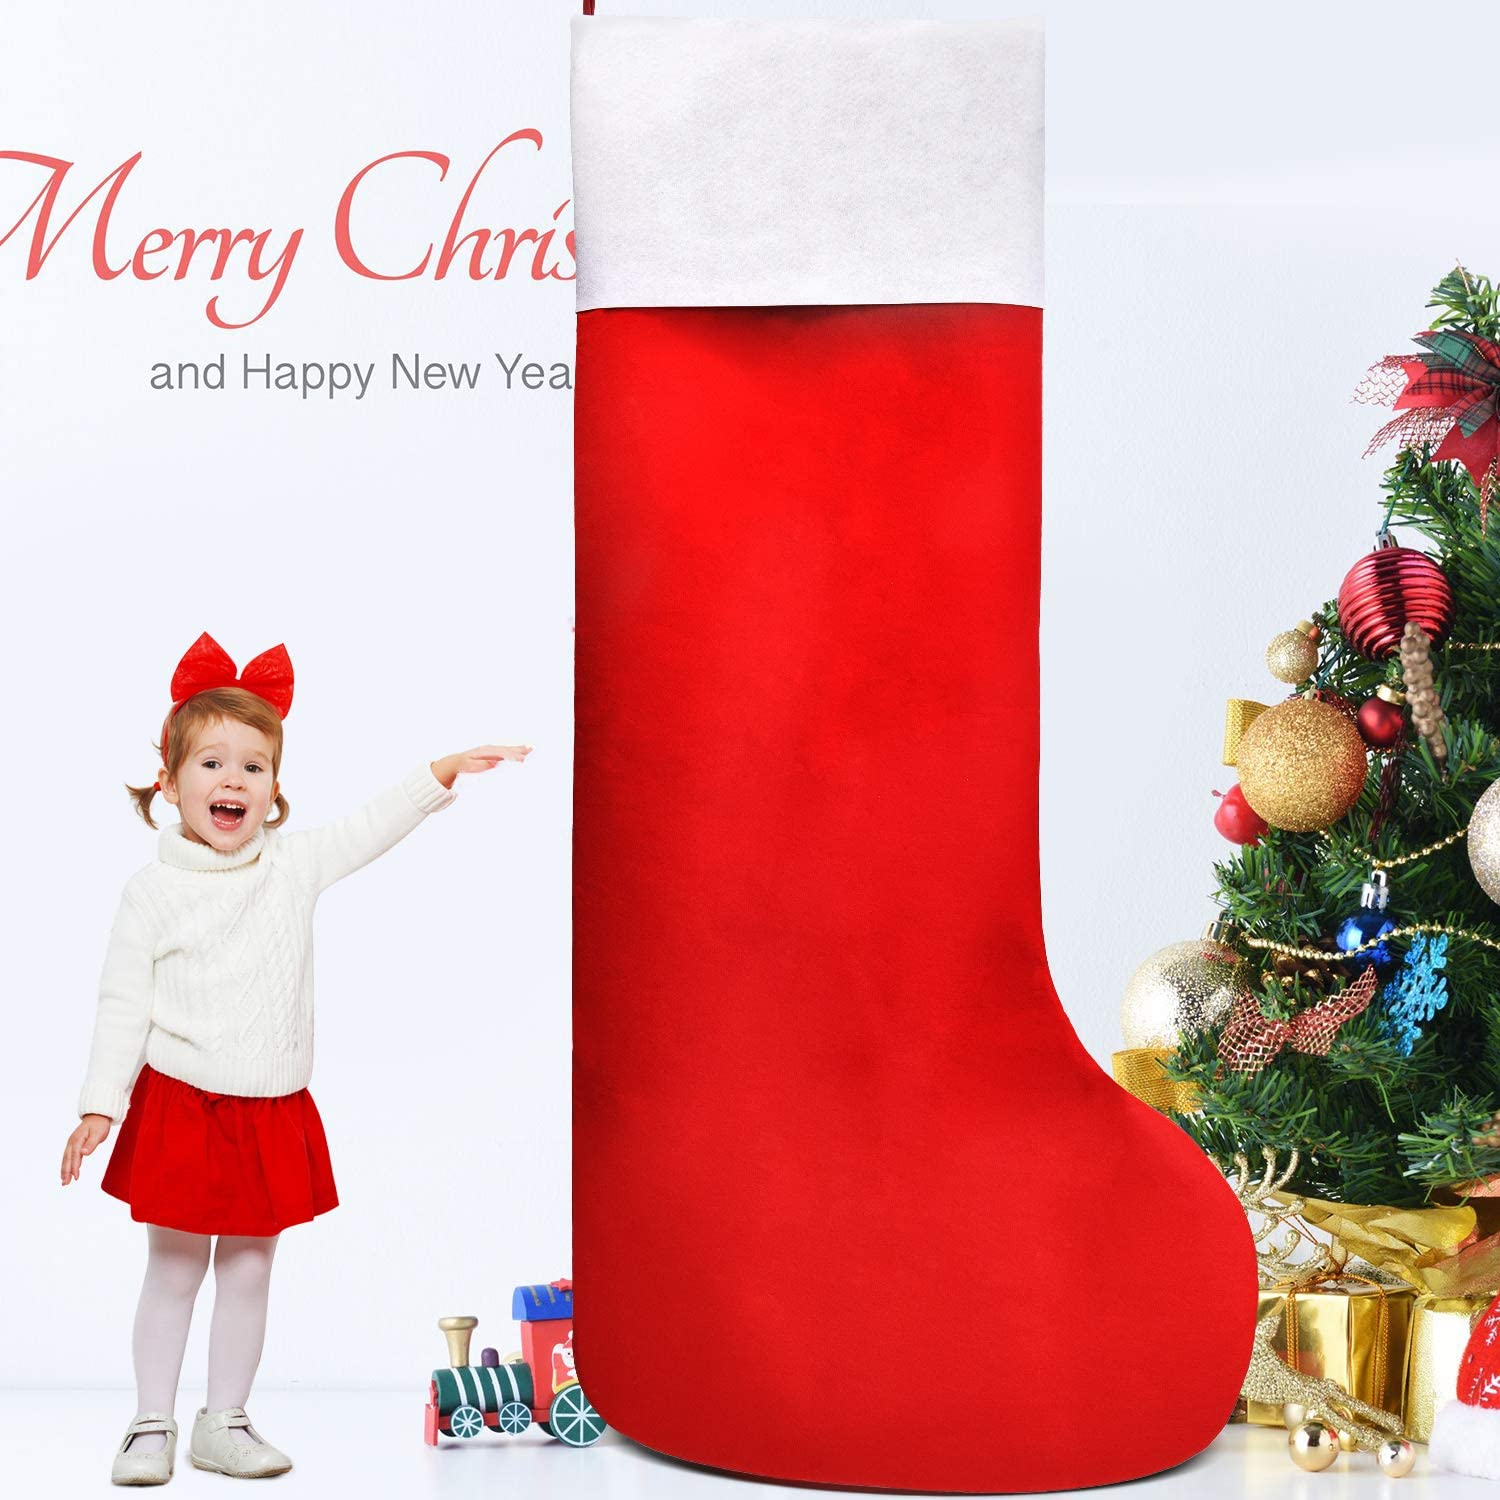 Syhood Giant Christmas Stocking Large Christmas Felt Stocking Red And White Oversized Stocking For Small Gifts Candy Holiday Christmas Storage Decoration 57 By 27 5 Inch Home Kitchen Amazon Com